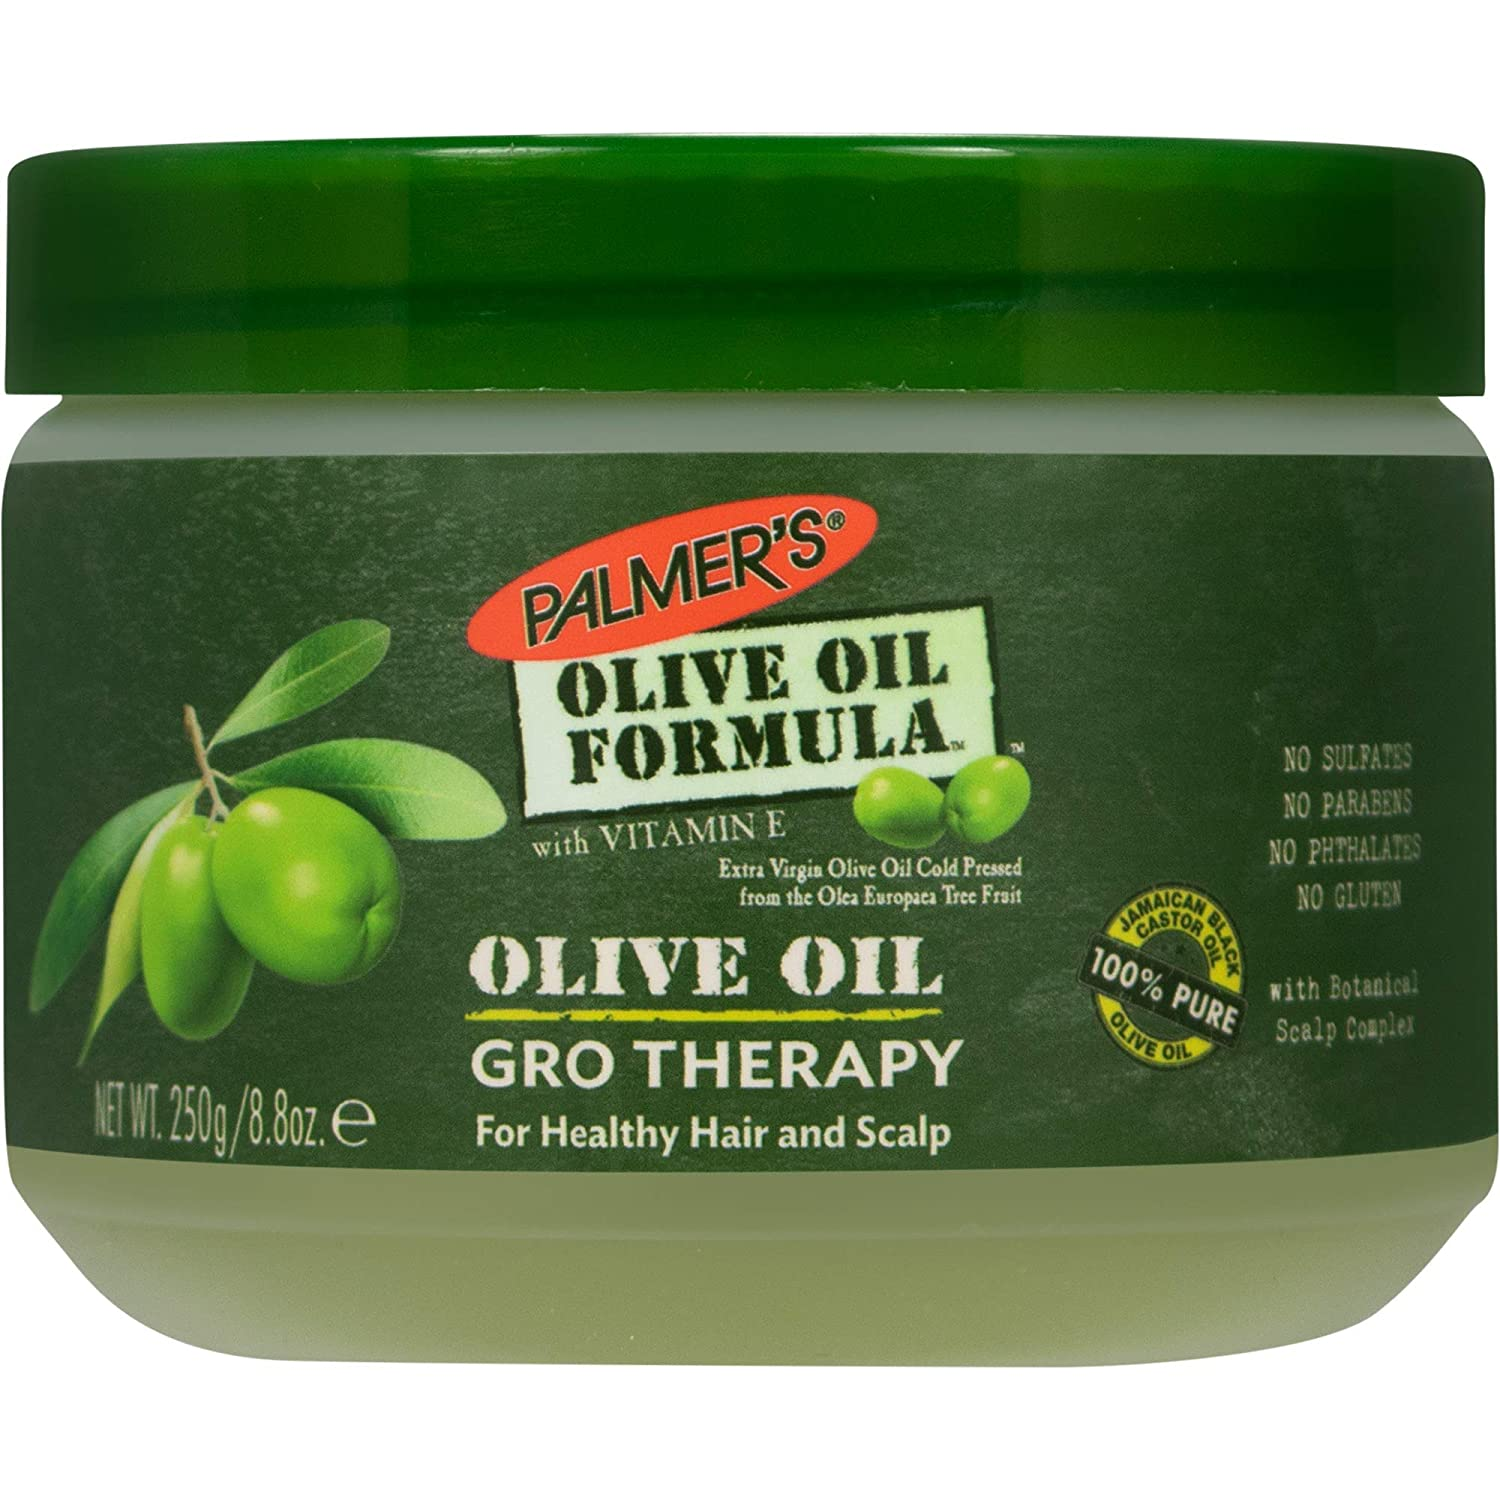 Palmer's Olive Oil Formula Gro Therapy for Healthy Hair and Scalp, 8.8 oz